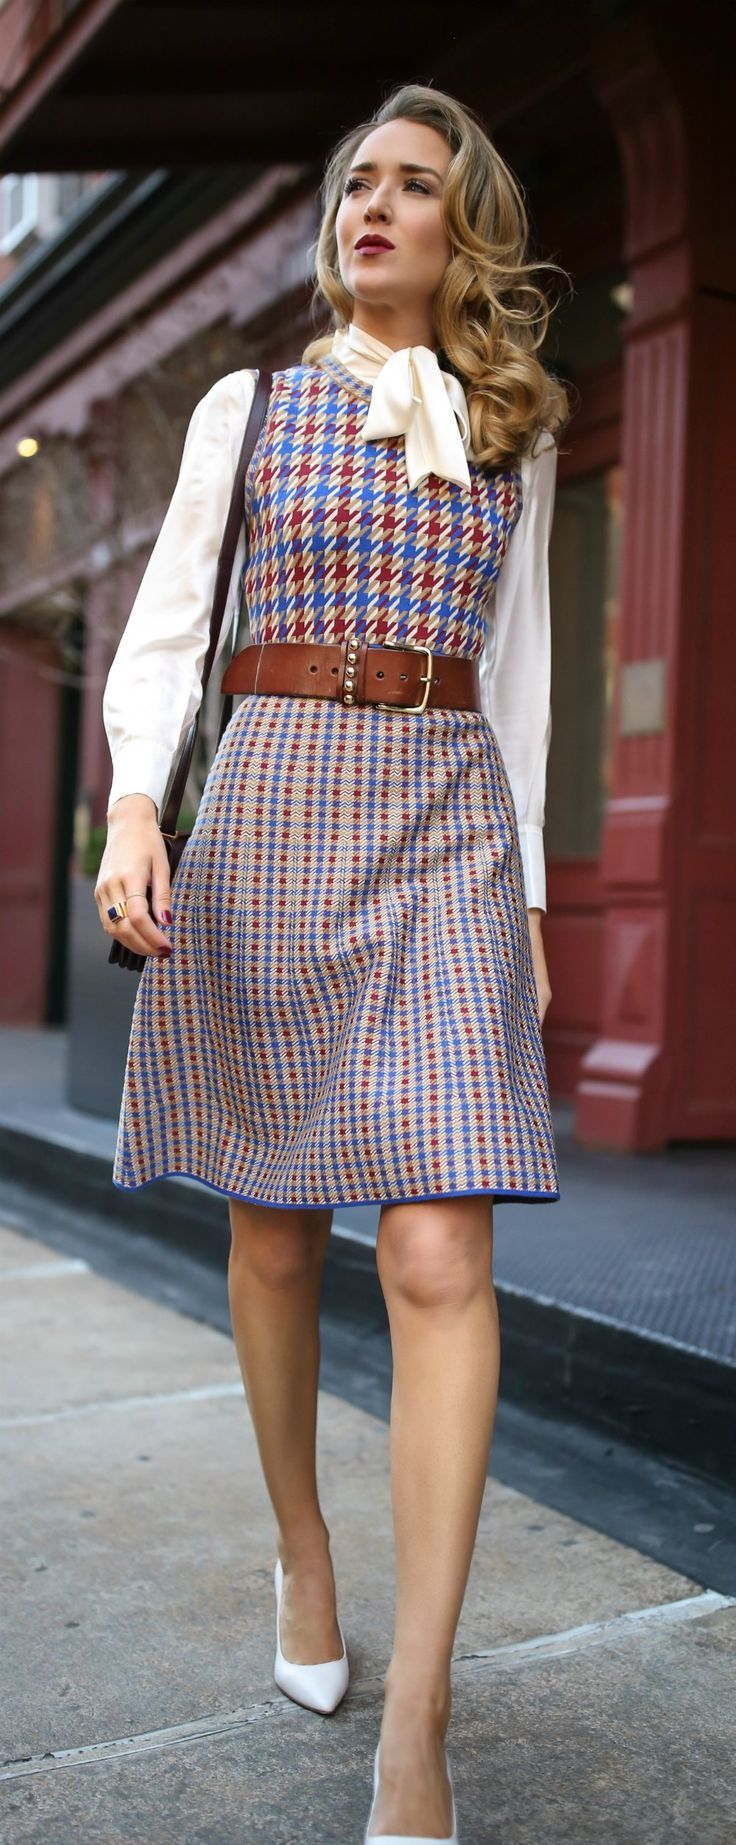 Blue, red and white checked knit dress, white tie-neck blouse, brown leather waist belt, white block heel pumps, suede burgundy crossbody bag {Tory Burch, YSL, fall fashion, what to wear on Thanksgiving, Thanksgiving outfit, classic fall dress, street style, classic dressing}